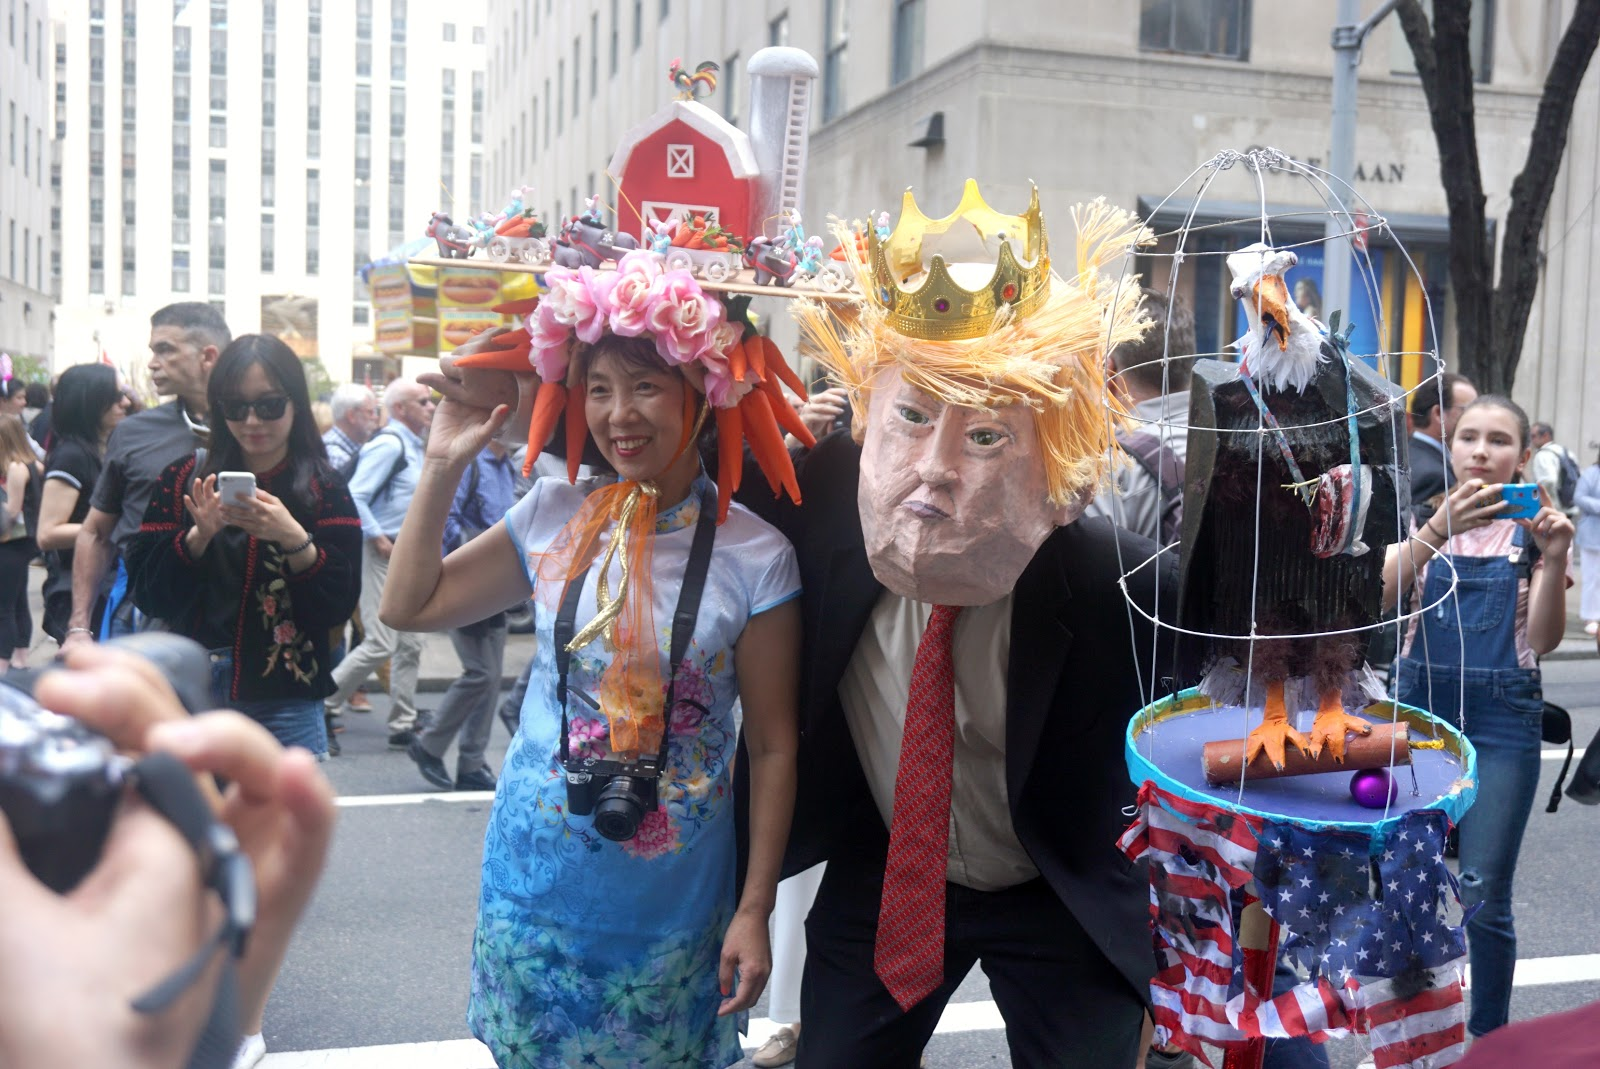 NYC Easter Bonnet Parade 2017